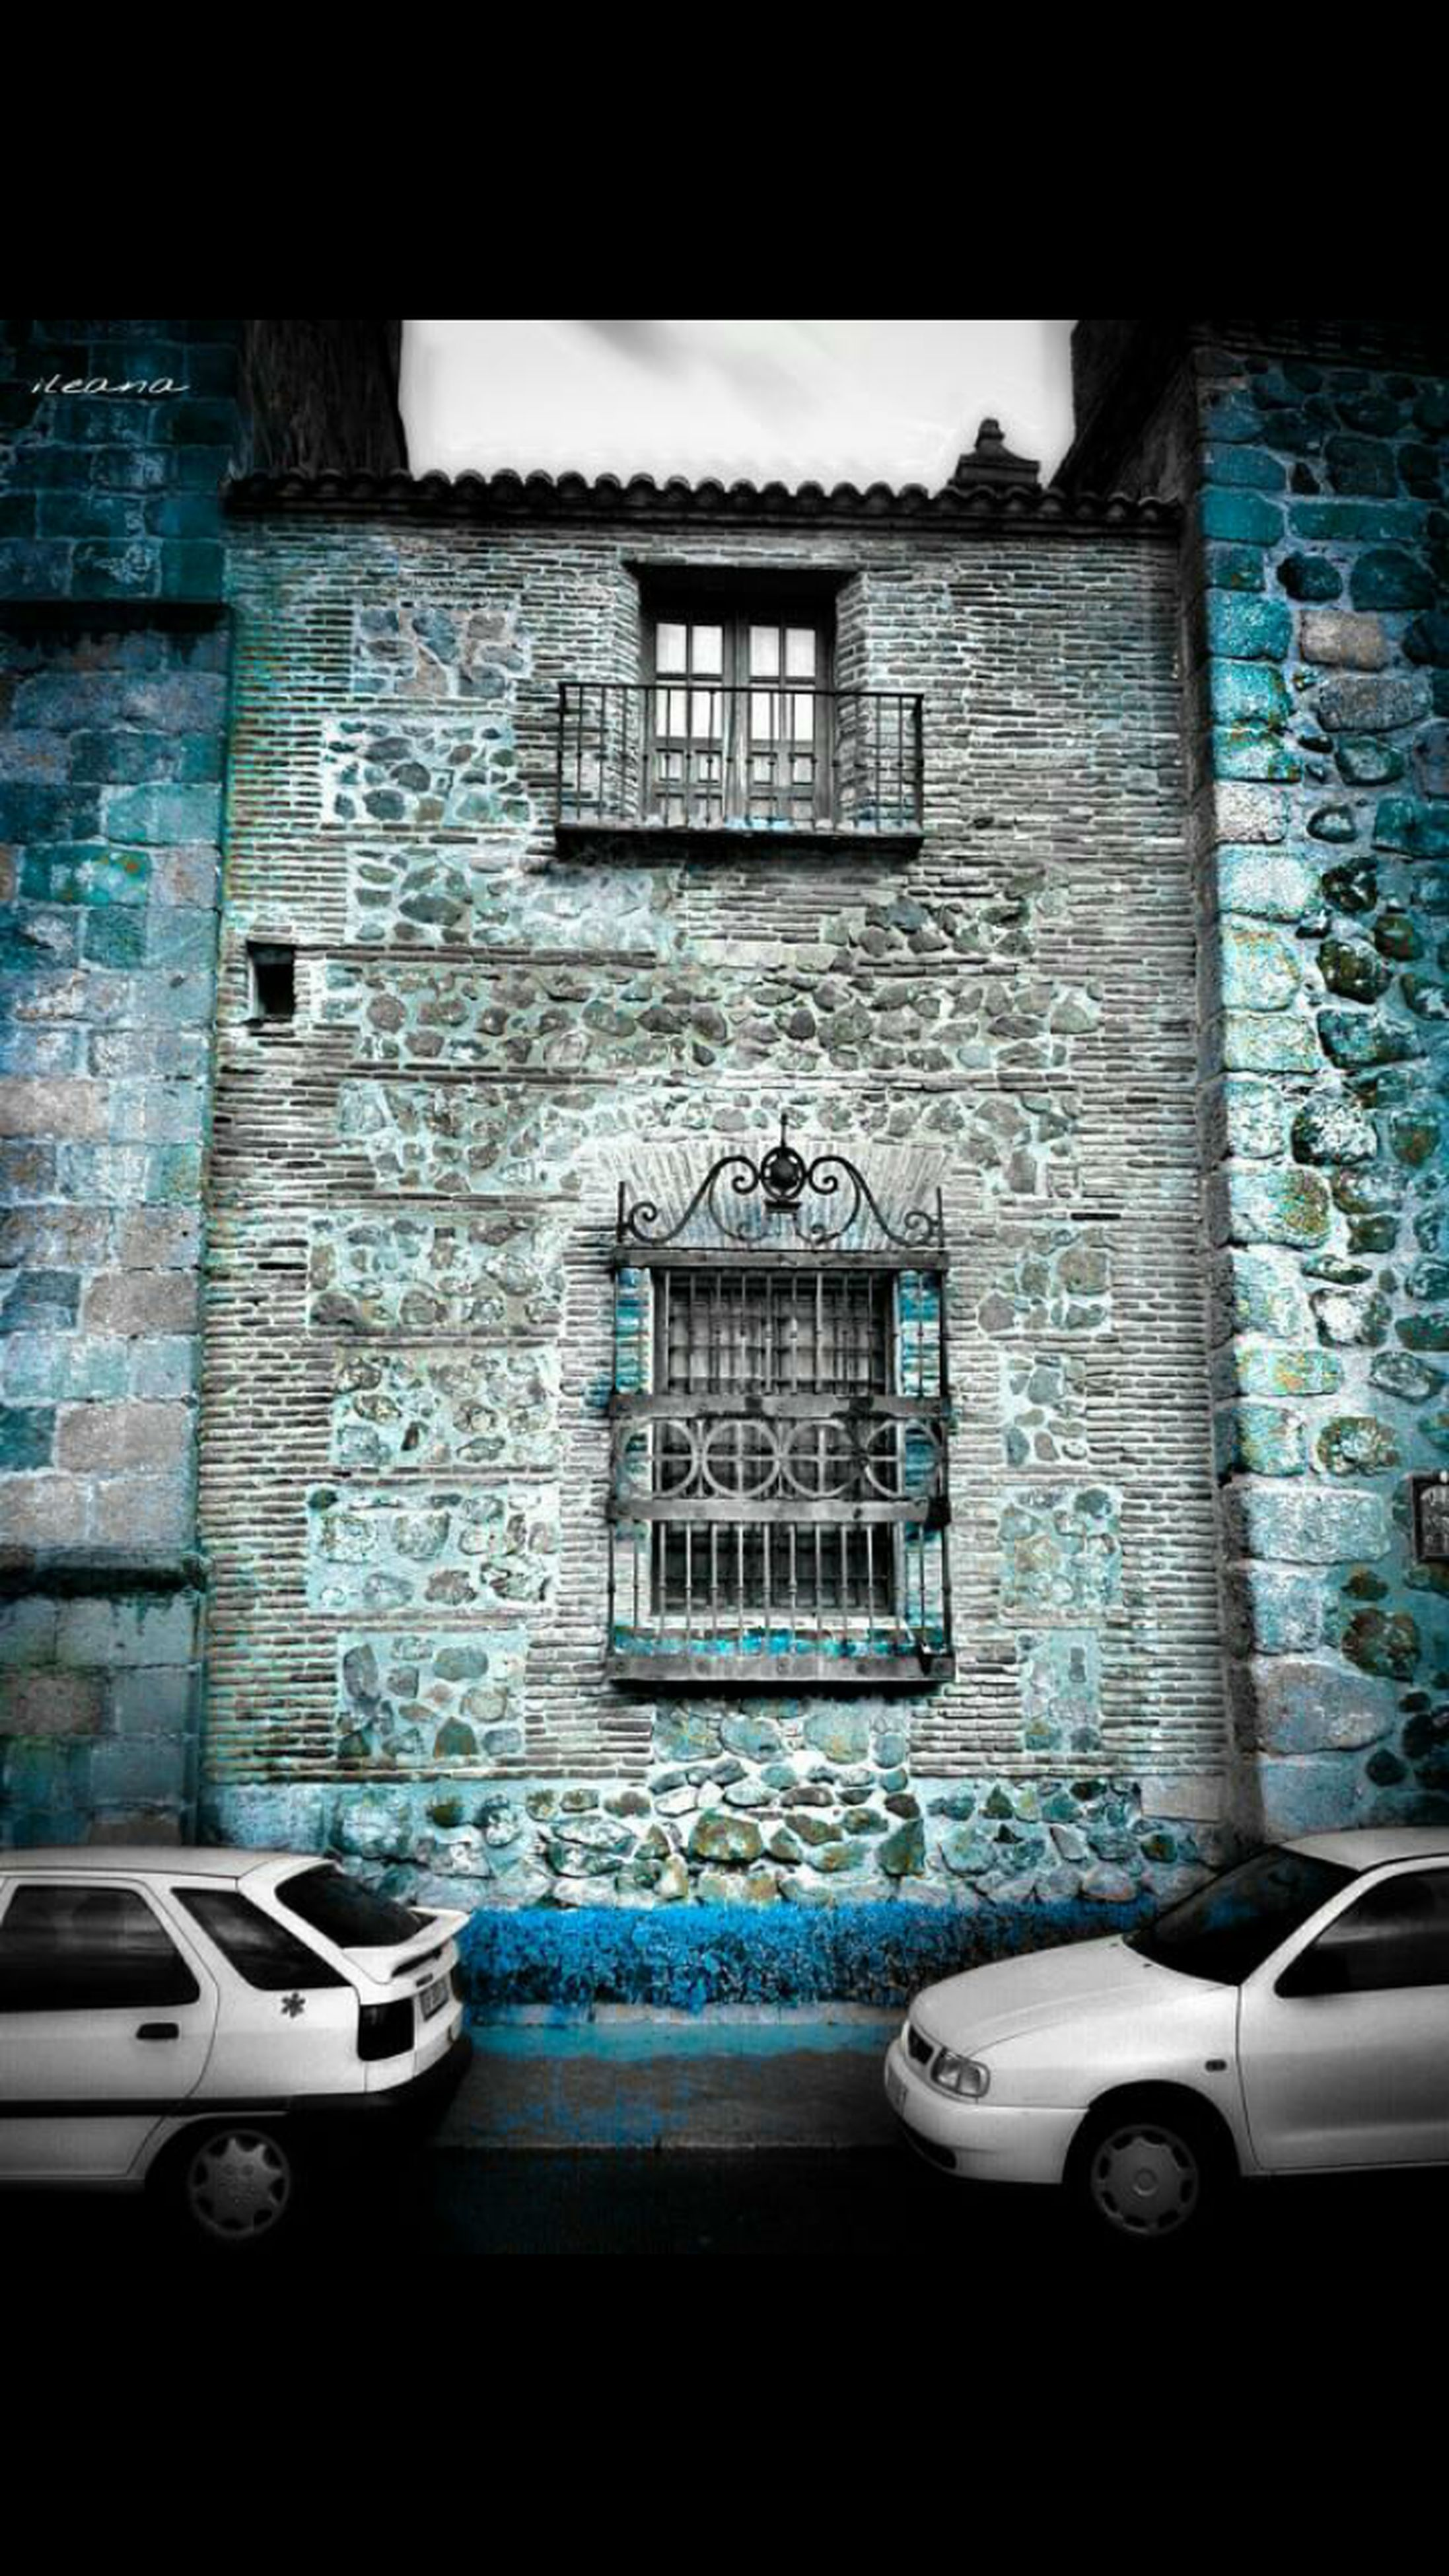 window, architecture, built structure, building exterior, wall - building feature, house, wall, transportation, building, indoors, door, blue, no people, mode of transport, glass - material, residential building, day, residential structure, land vehicle, reflection